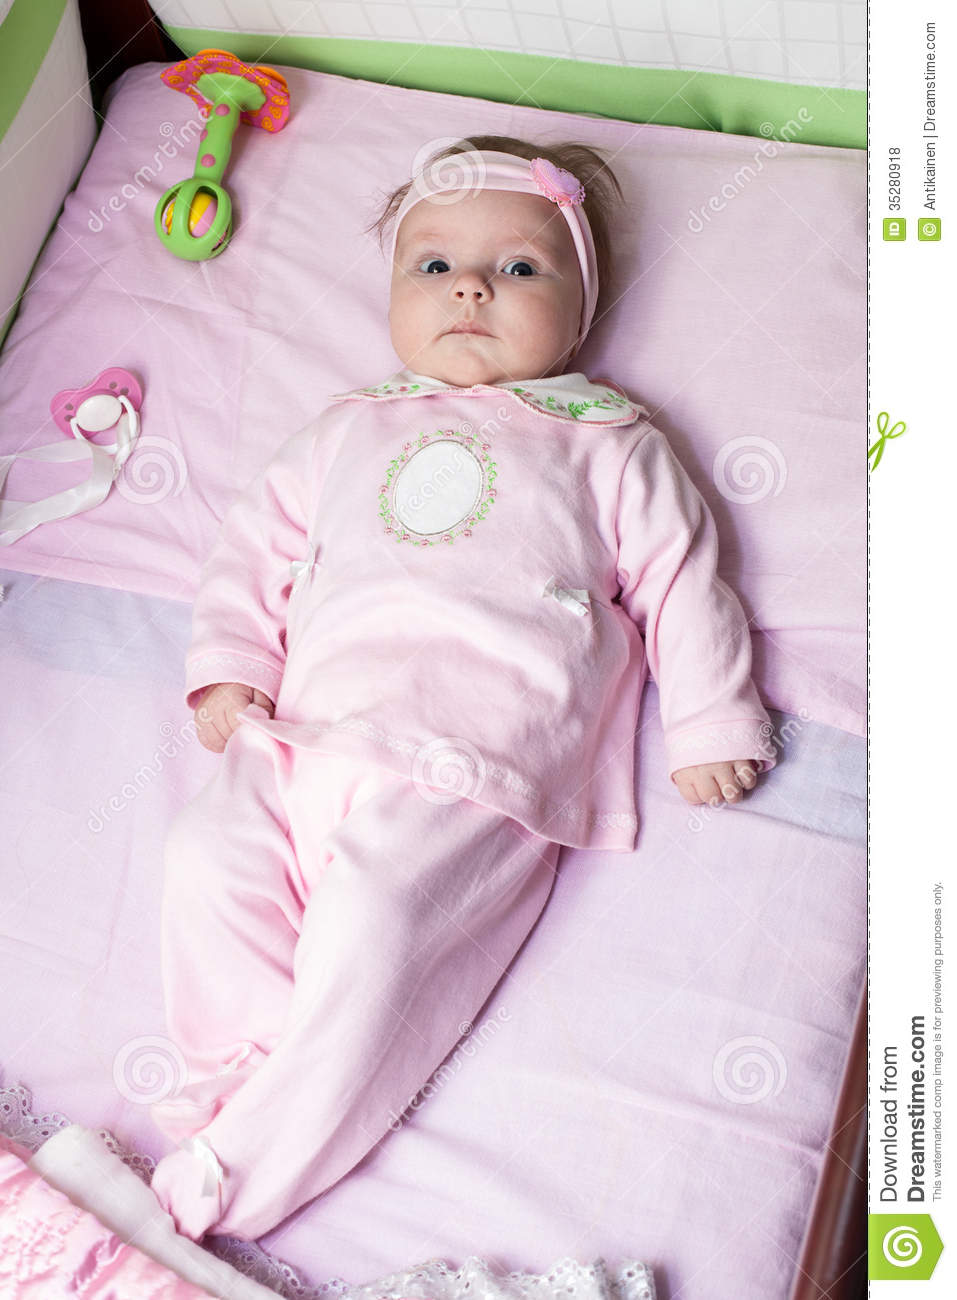 Newborn baby girl is laying in bed